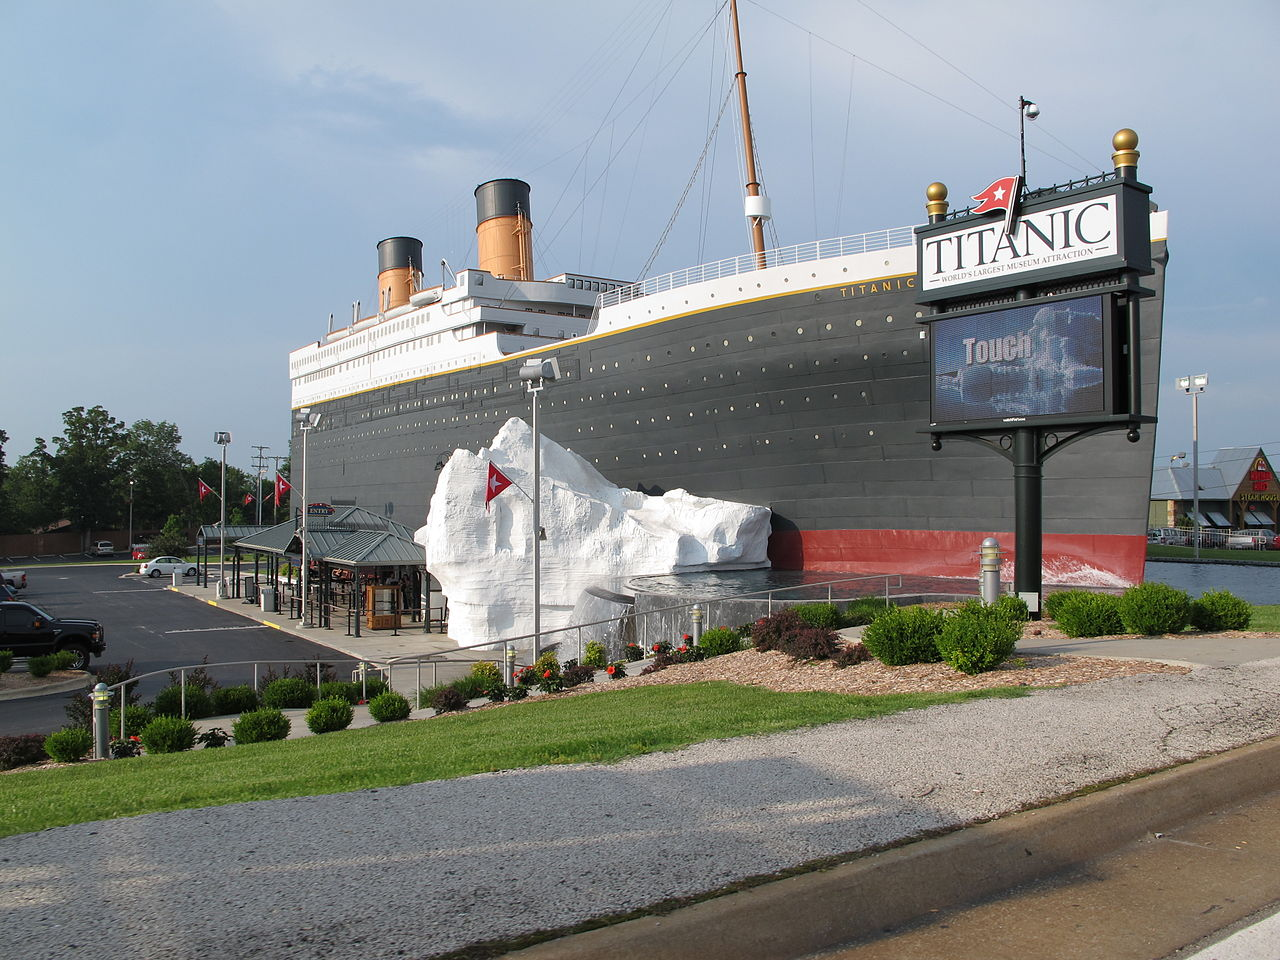 The Titanic Museum is a half-scale replica of the ship. There is also a replica of the iceberg that the ship struck.